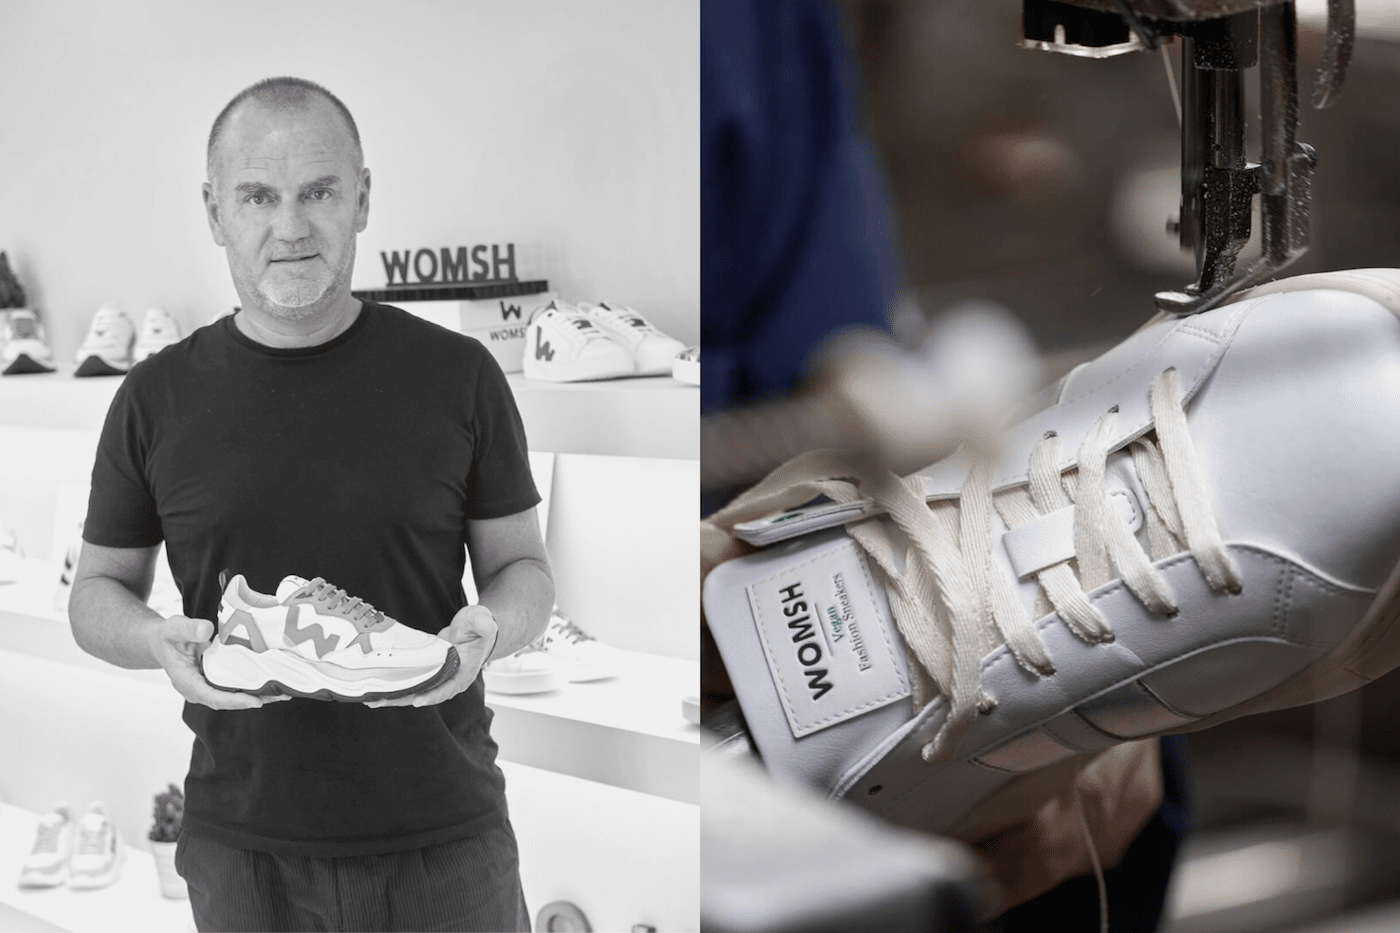 sustainable sneakers: WOMSH